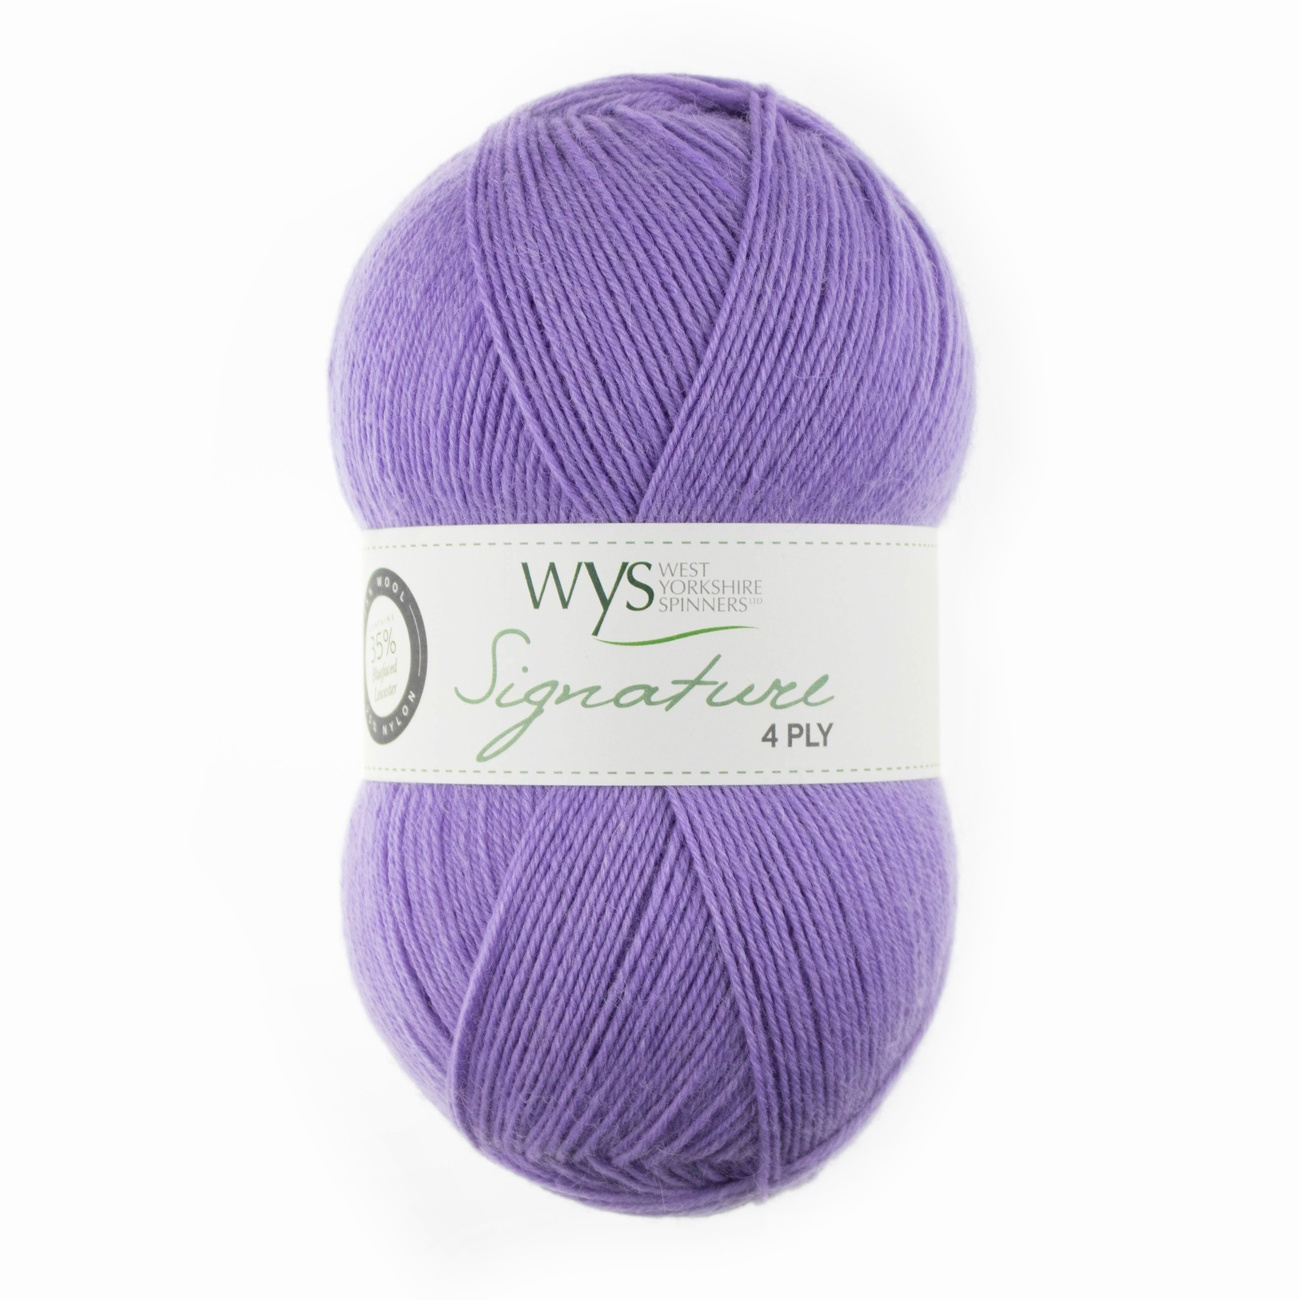 West Yorkshire Spinners Signature 4 ply - Violet